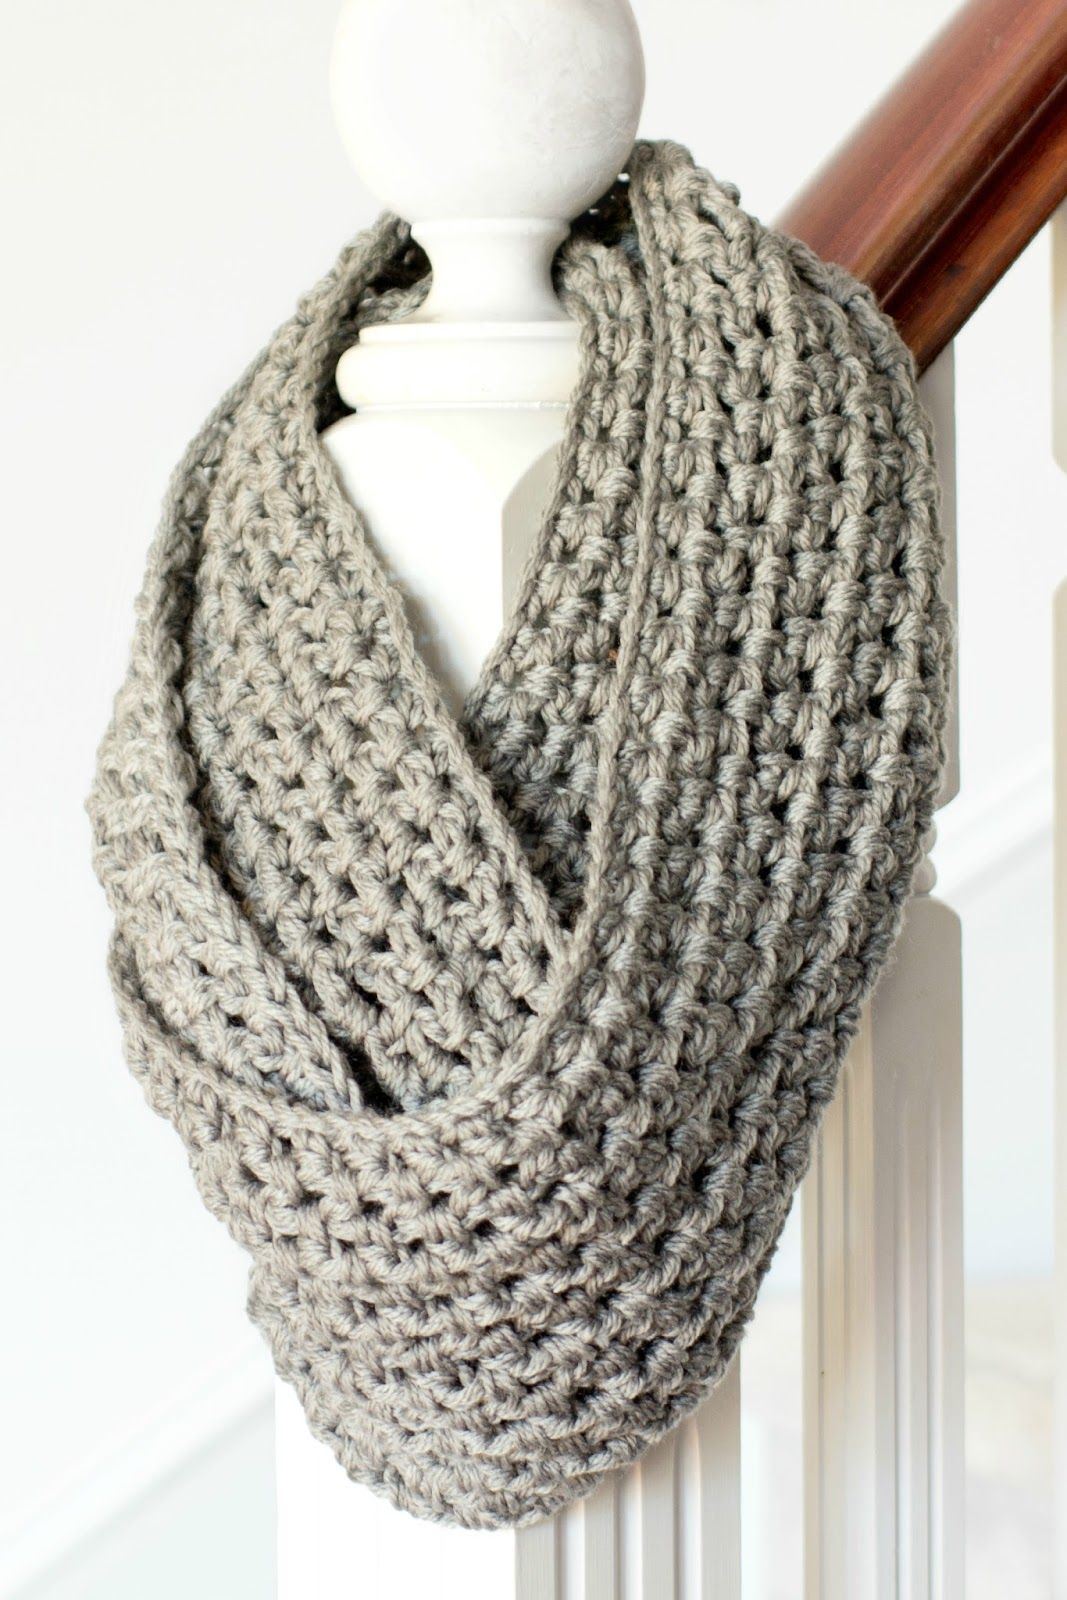 What You Should Know Before Proceeding Crochet Chunky Yarn Patterns Chunky Yarn Crochet Patterns Basic Chunky Infinity Scarf Crochet